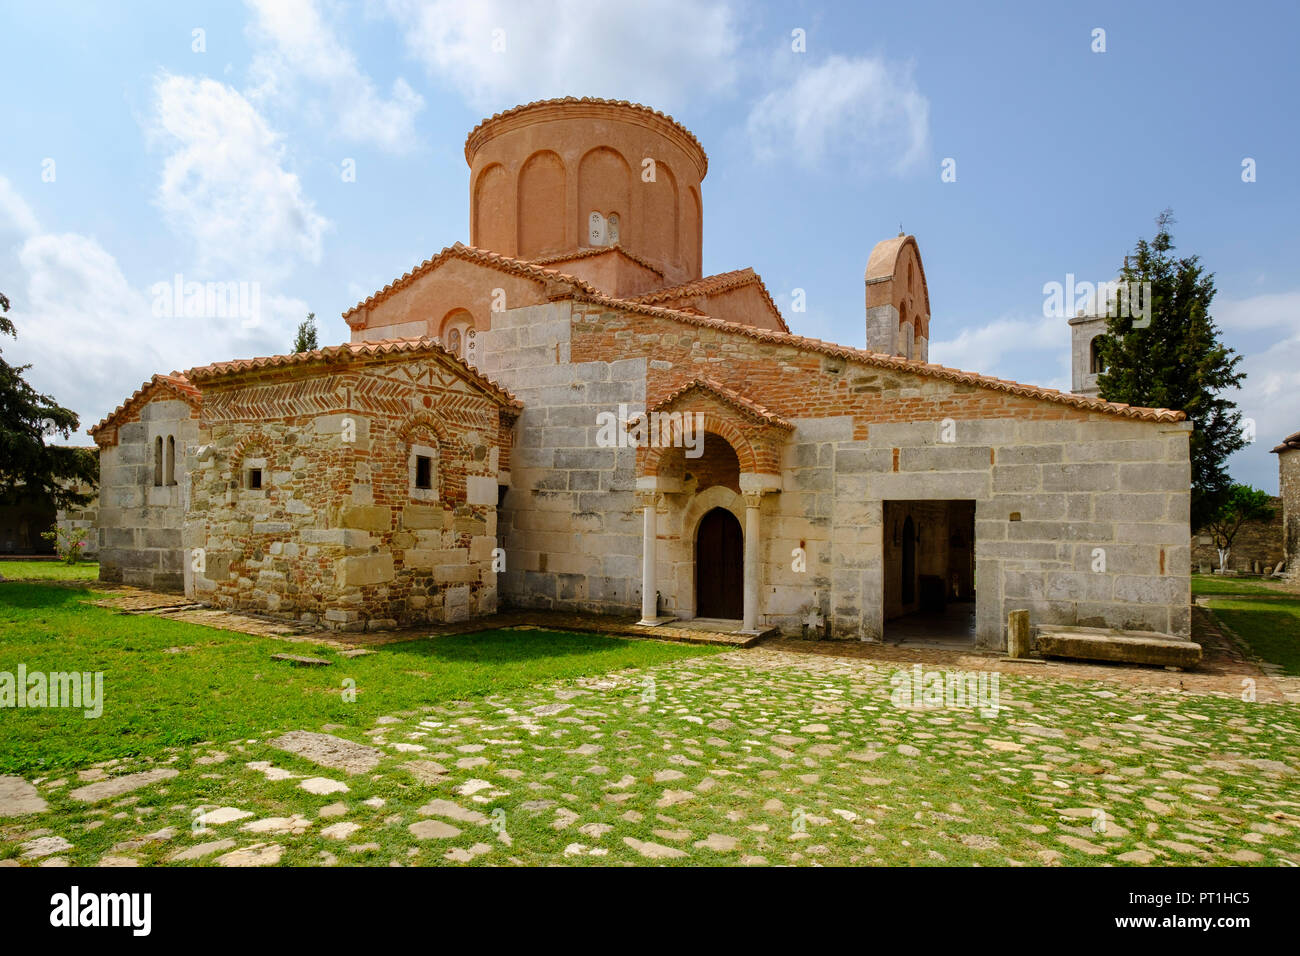 Albania, Fier County, ancient city Apollonia, St. Mary's Church - Stock Image